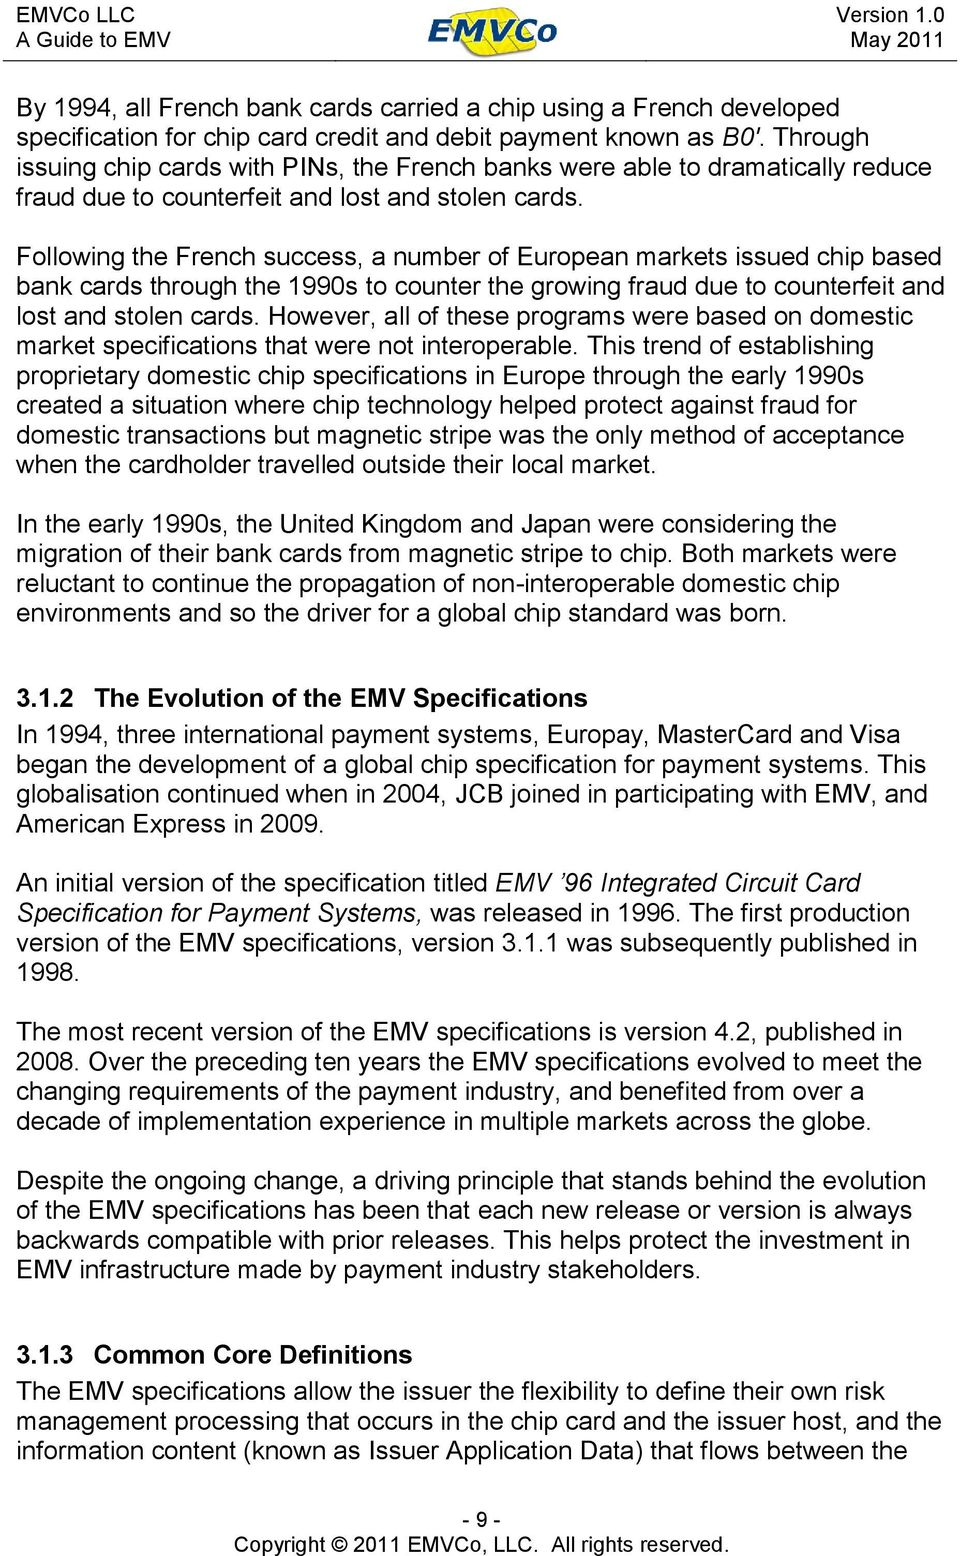 Following the French success, a number of European markets issued chip based bank cards through the 1990s to counter the growing fraud due to counterfeit and lost and stolen cards.